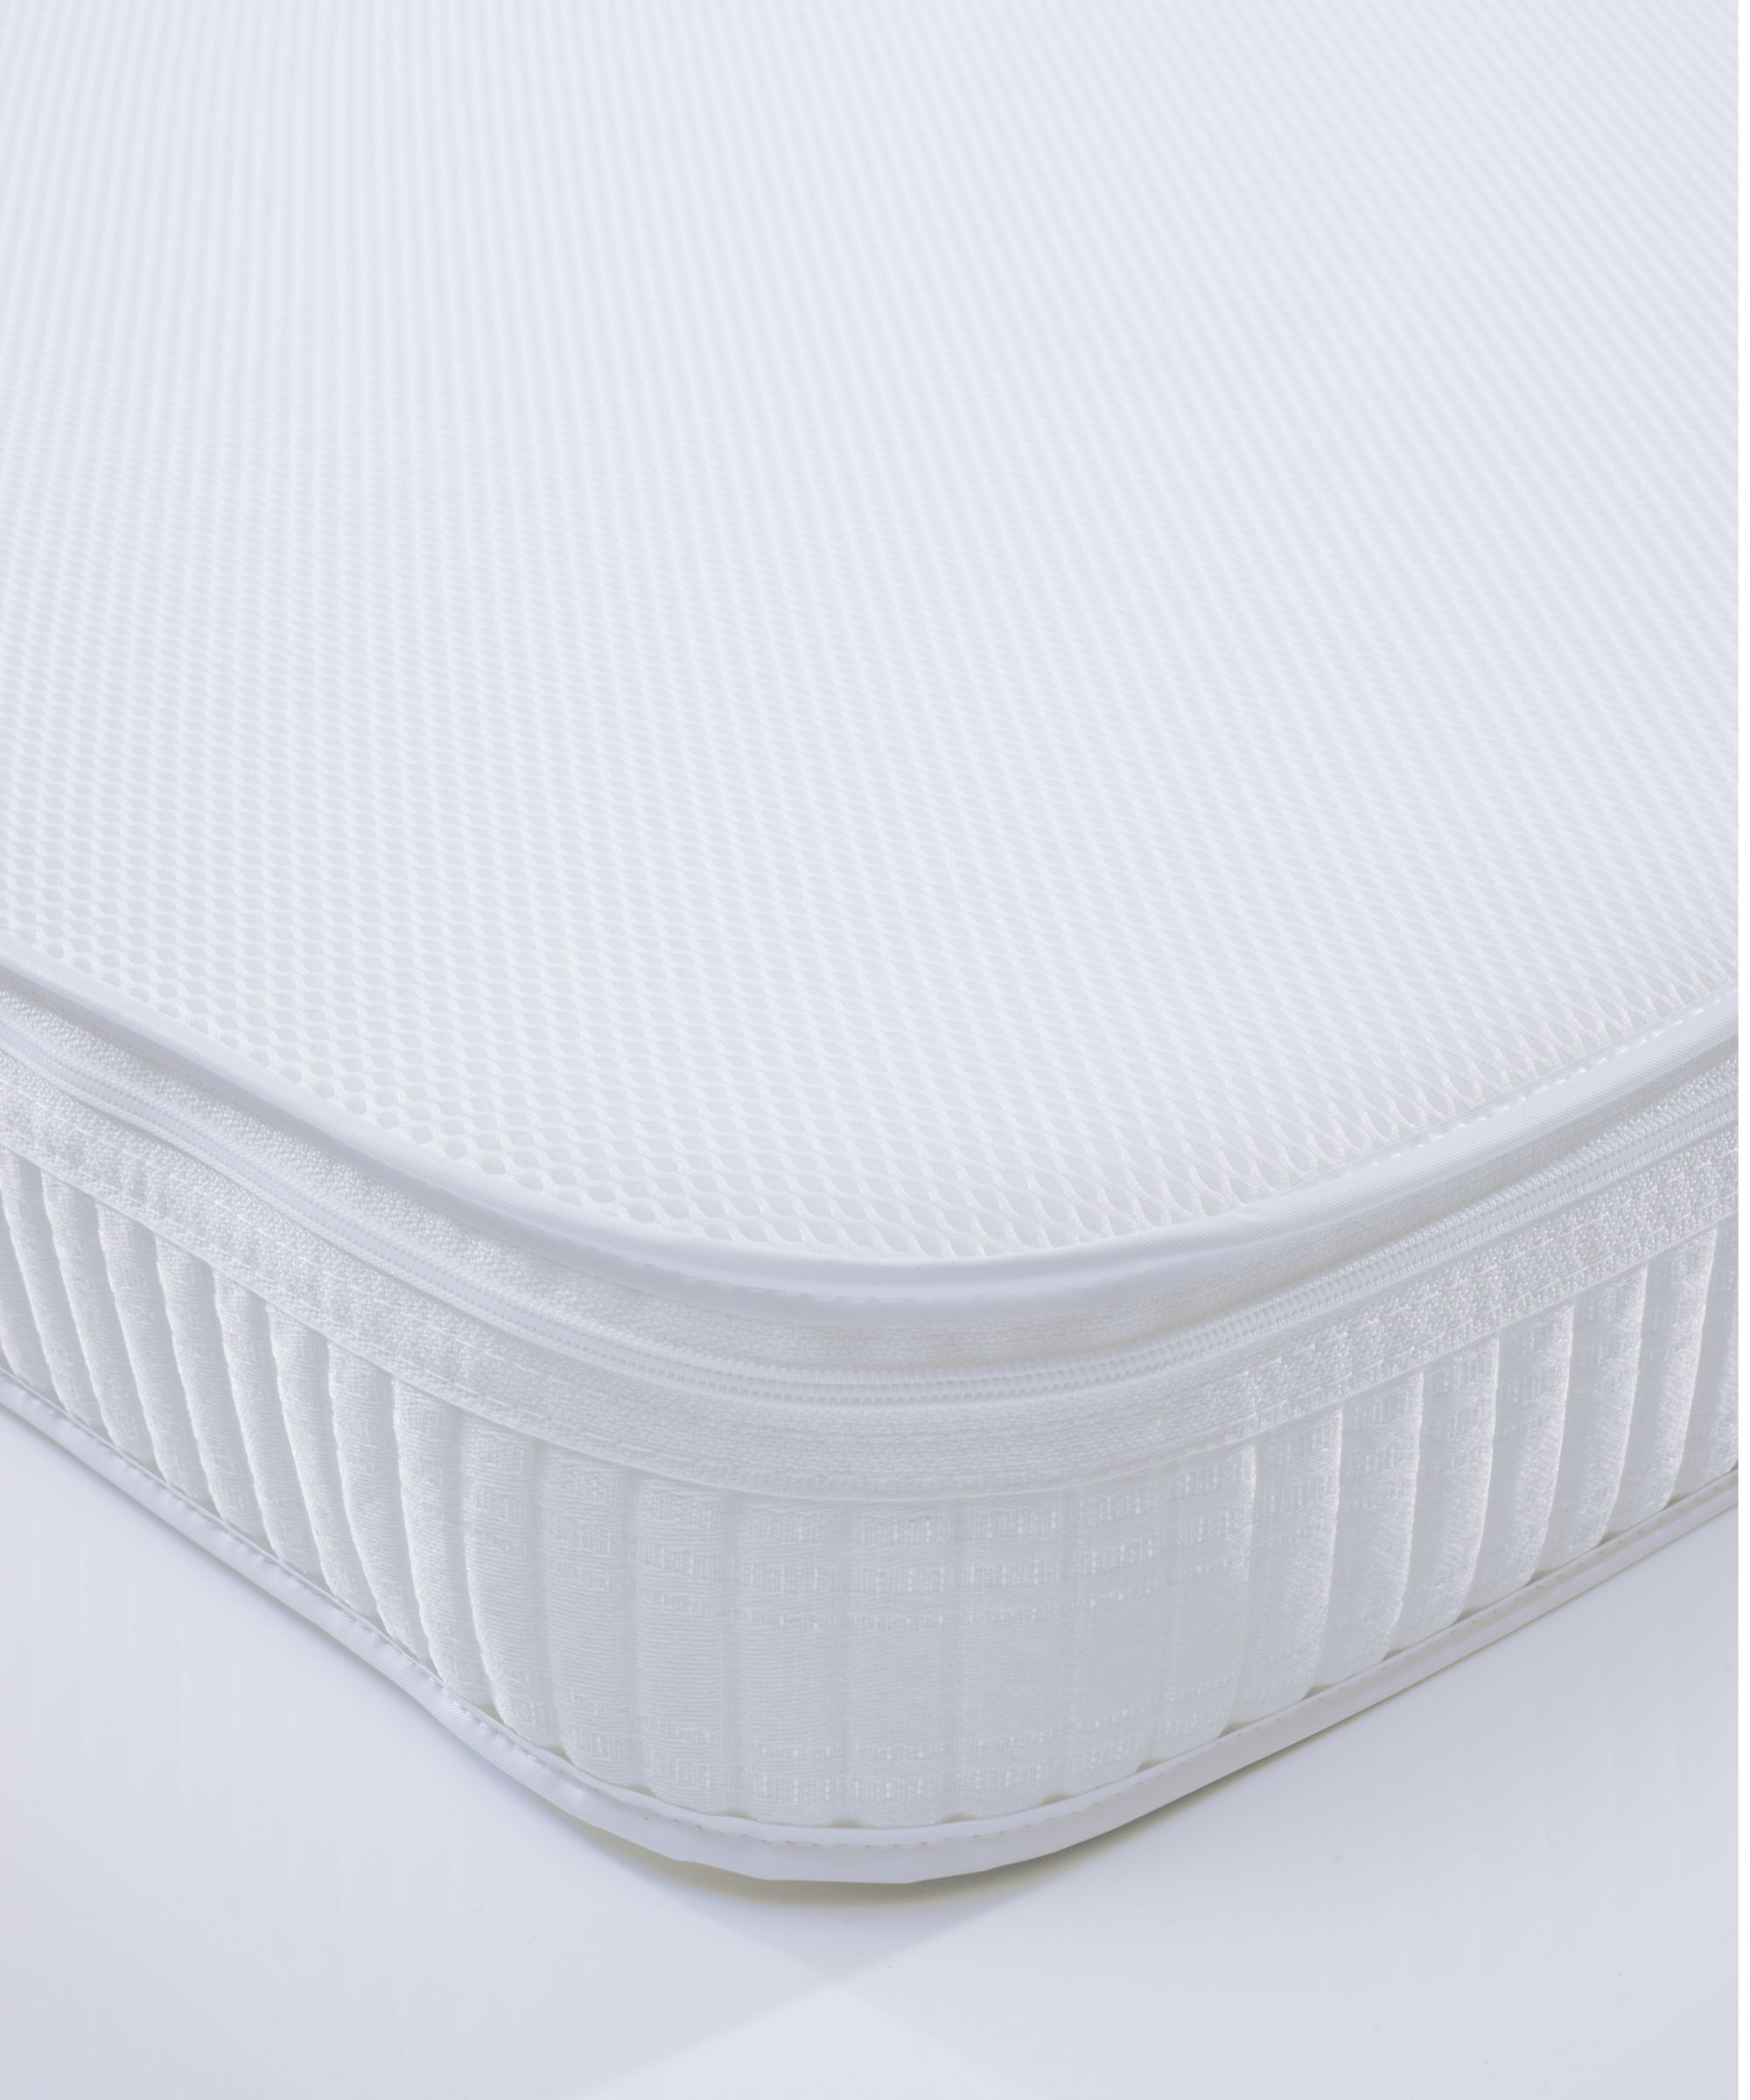 38 X 89cm Crib Mattress Mothercare 38 X 89cm Crib Square End Safeseal Foam Mattress With